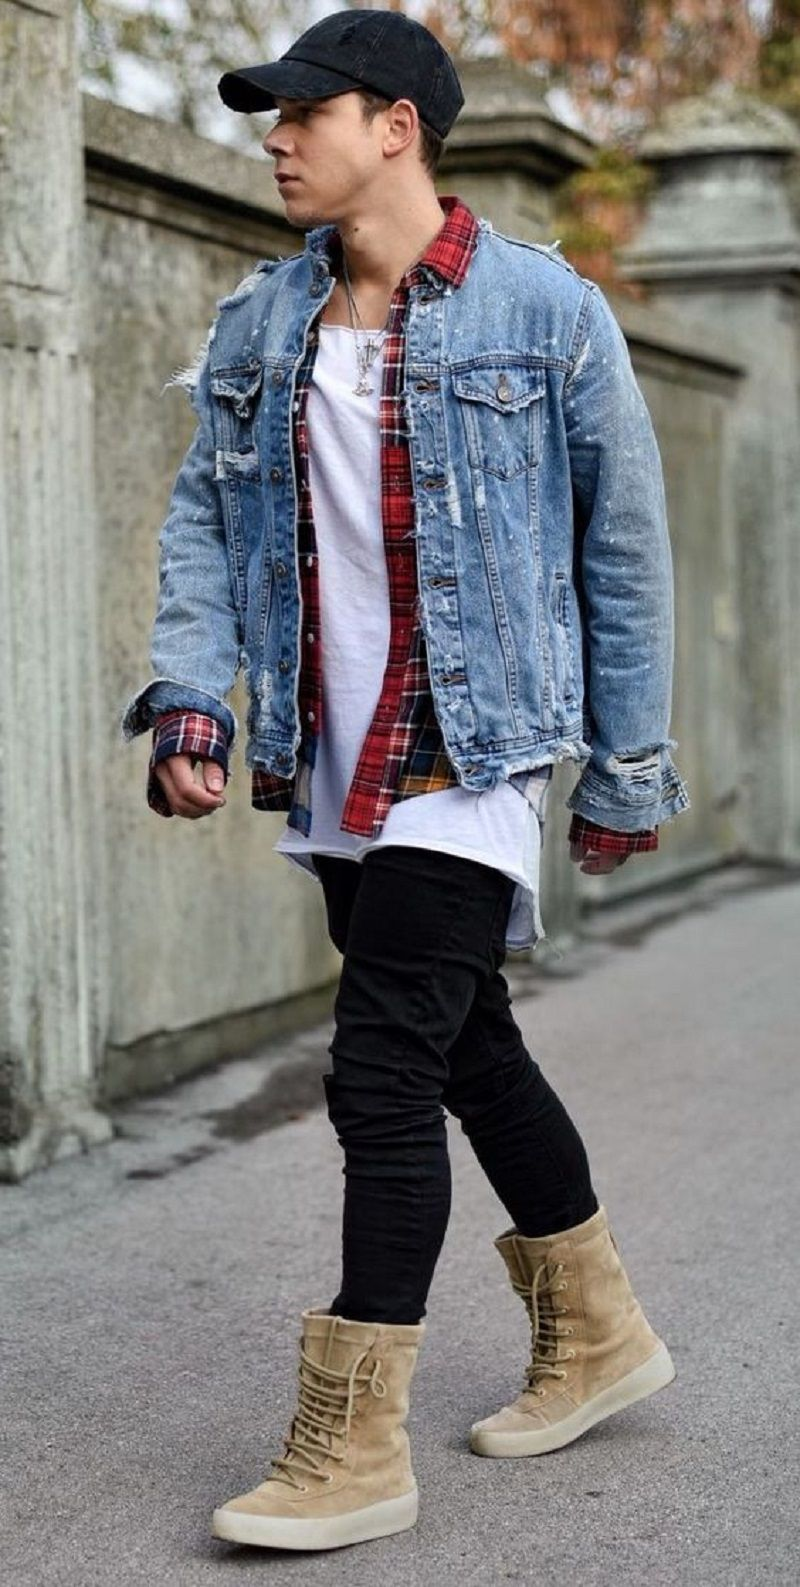 How To Wear Denim Jacket For Almost Any Time Men Anytime Denimjacket Jeans Men Pants Nice Denim Jacket Men Mens Outfits How To Wear Denim Jacket [ 1587 x 800 Pixel ]